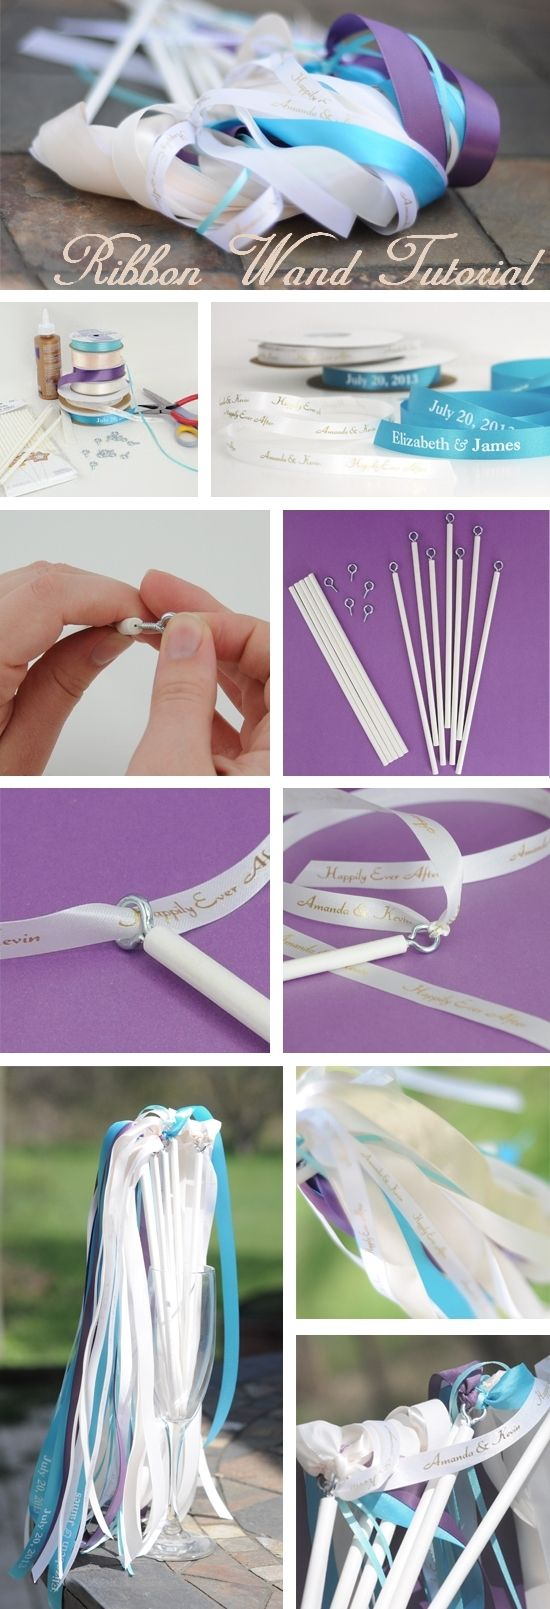 How to Make Personalized Ribbon Wands - A great DIY tutorial for creating ribbon wands!  Use ribbon wands as the perfect send-off for your wedding reception.  #weddingsendoff #diy #diywedding #mwri - Click here for full step-by-step instructions:  http://blog.myweddingreceptionideas.com/2012/03/how-to-make-personalized-ribbon-wands.html